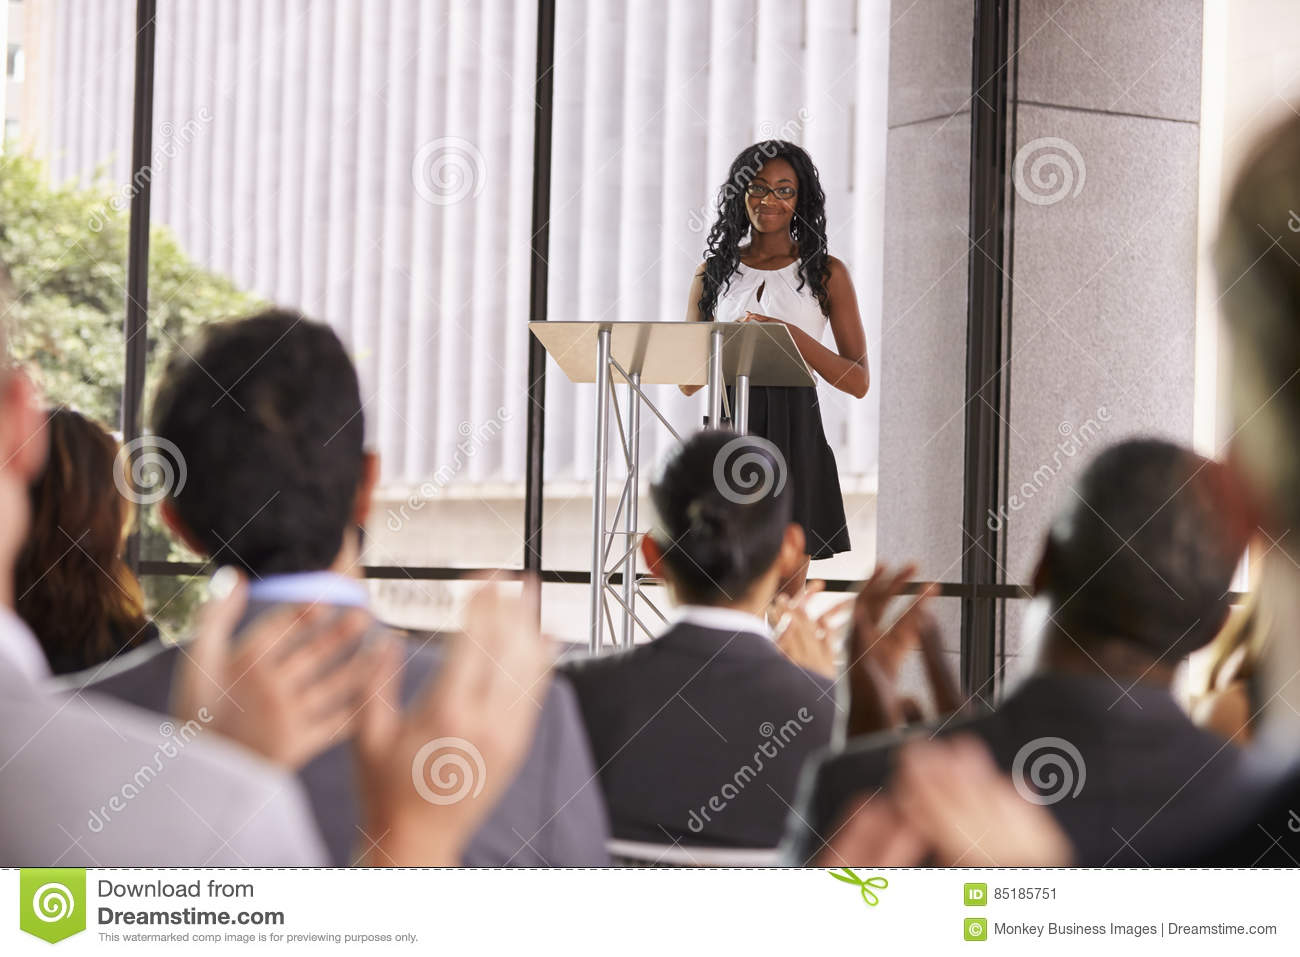 Audience at seminar applauding young black woman at lectern